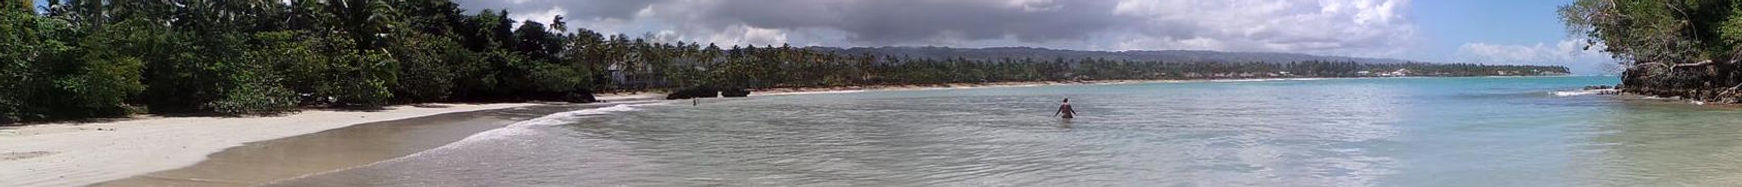 Playa Bonita , Las Terrenas , Samana , Dominikanische Republik